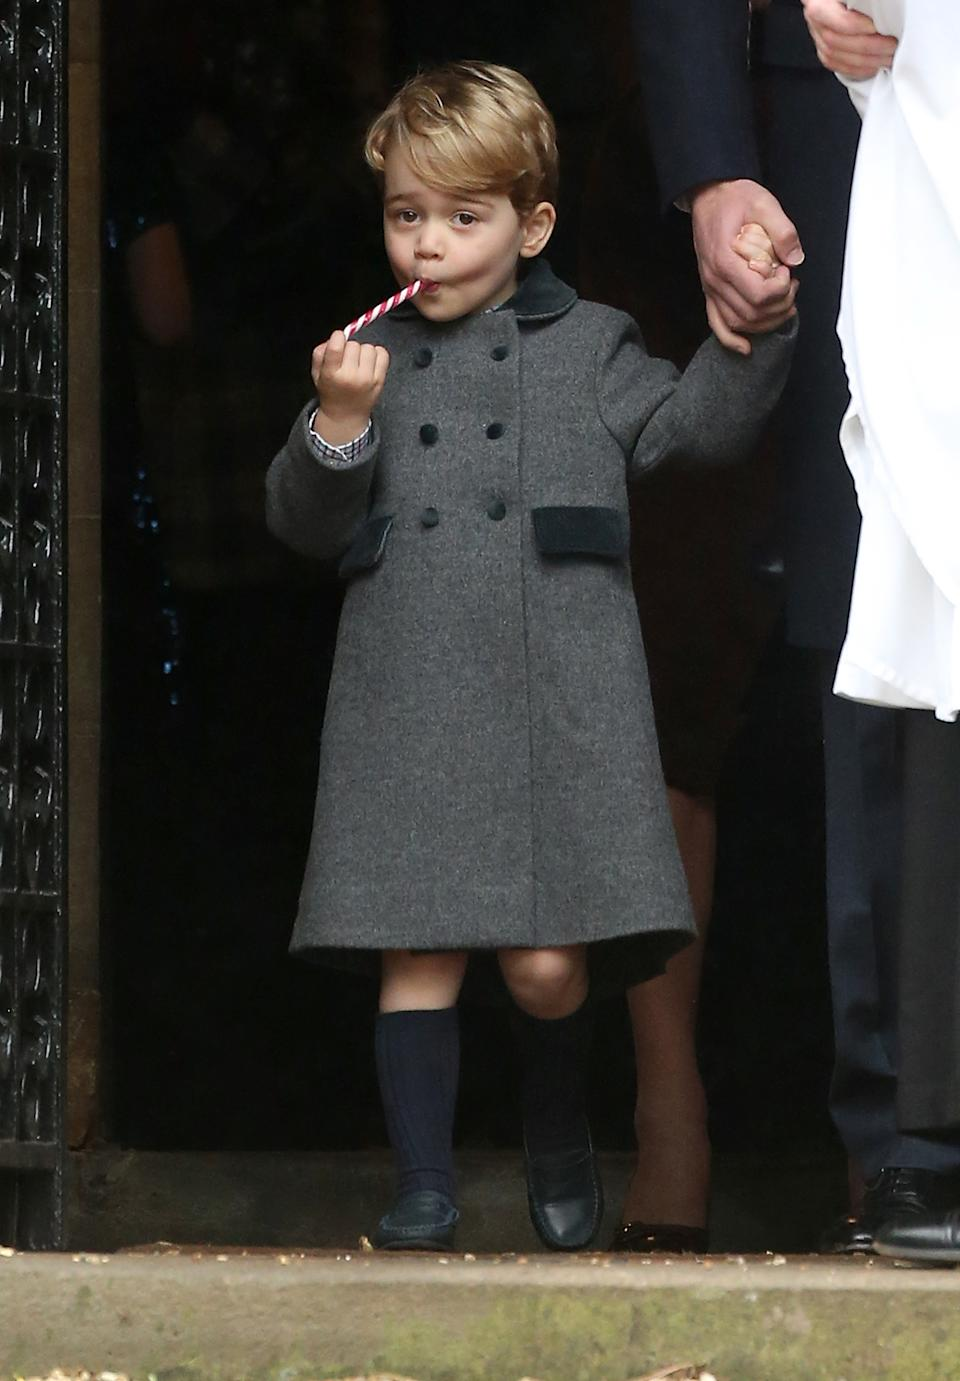 Despite the freezing temperatures on Christmas Day in 2016, Prince George was seen leaving church in shorts and long socks. Photo: Getty